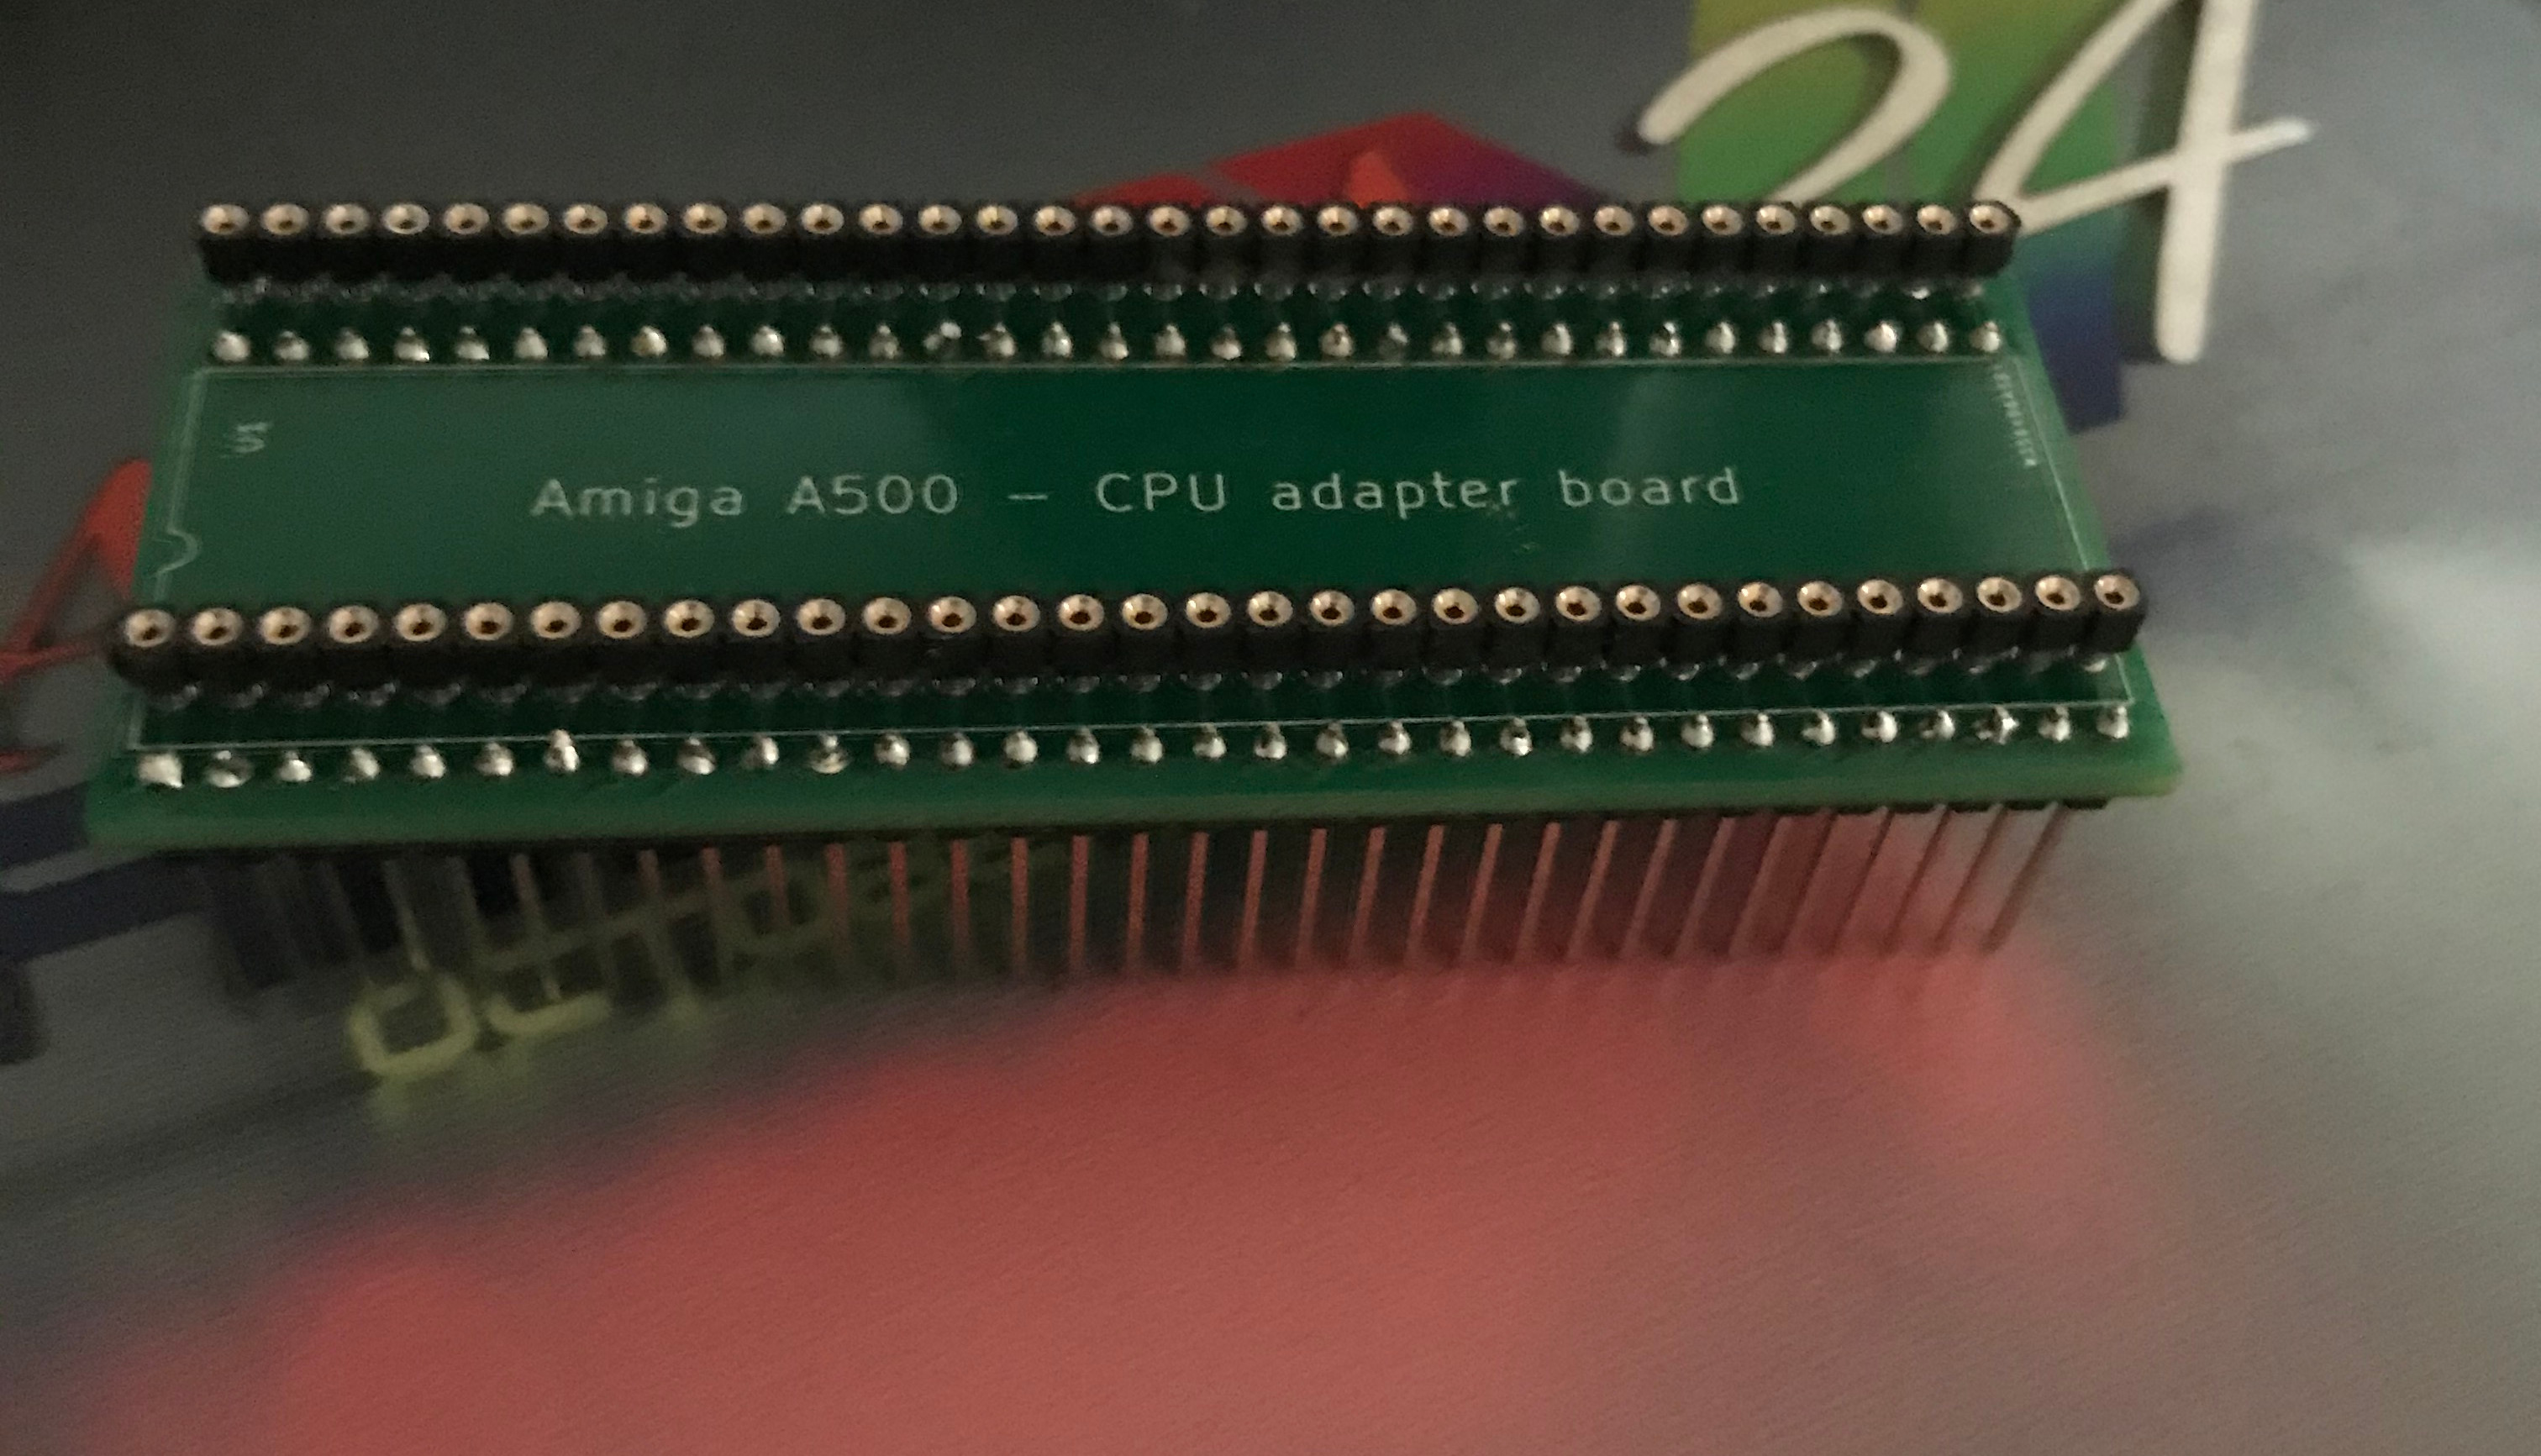 Amiga A500 CPU adapter